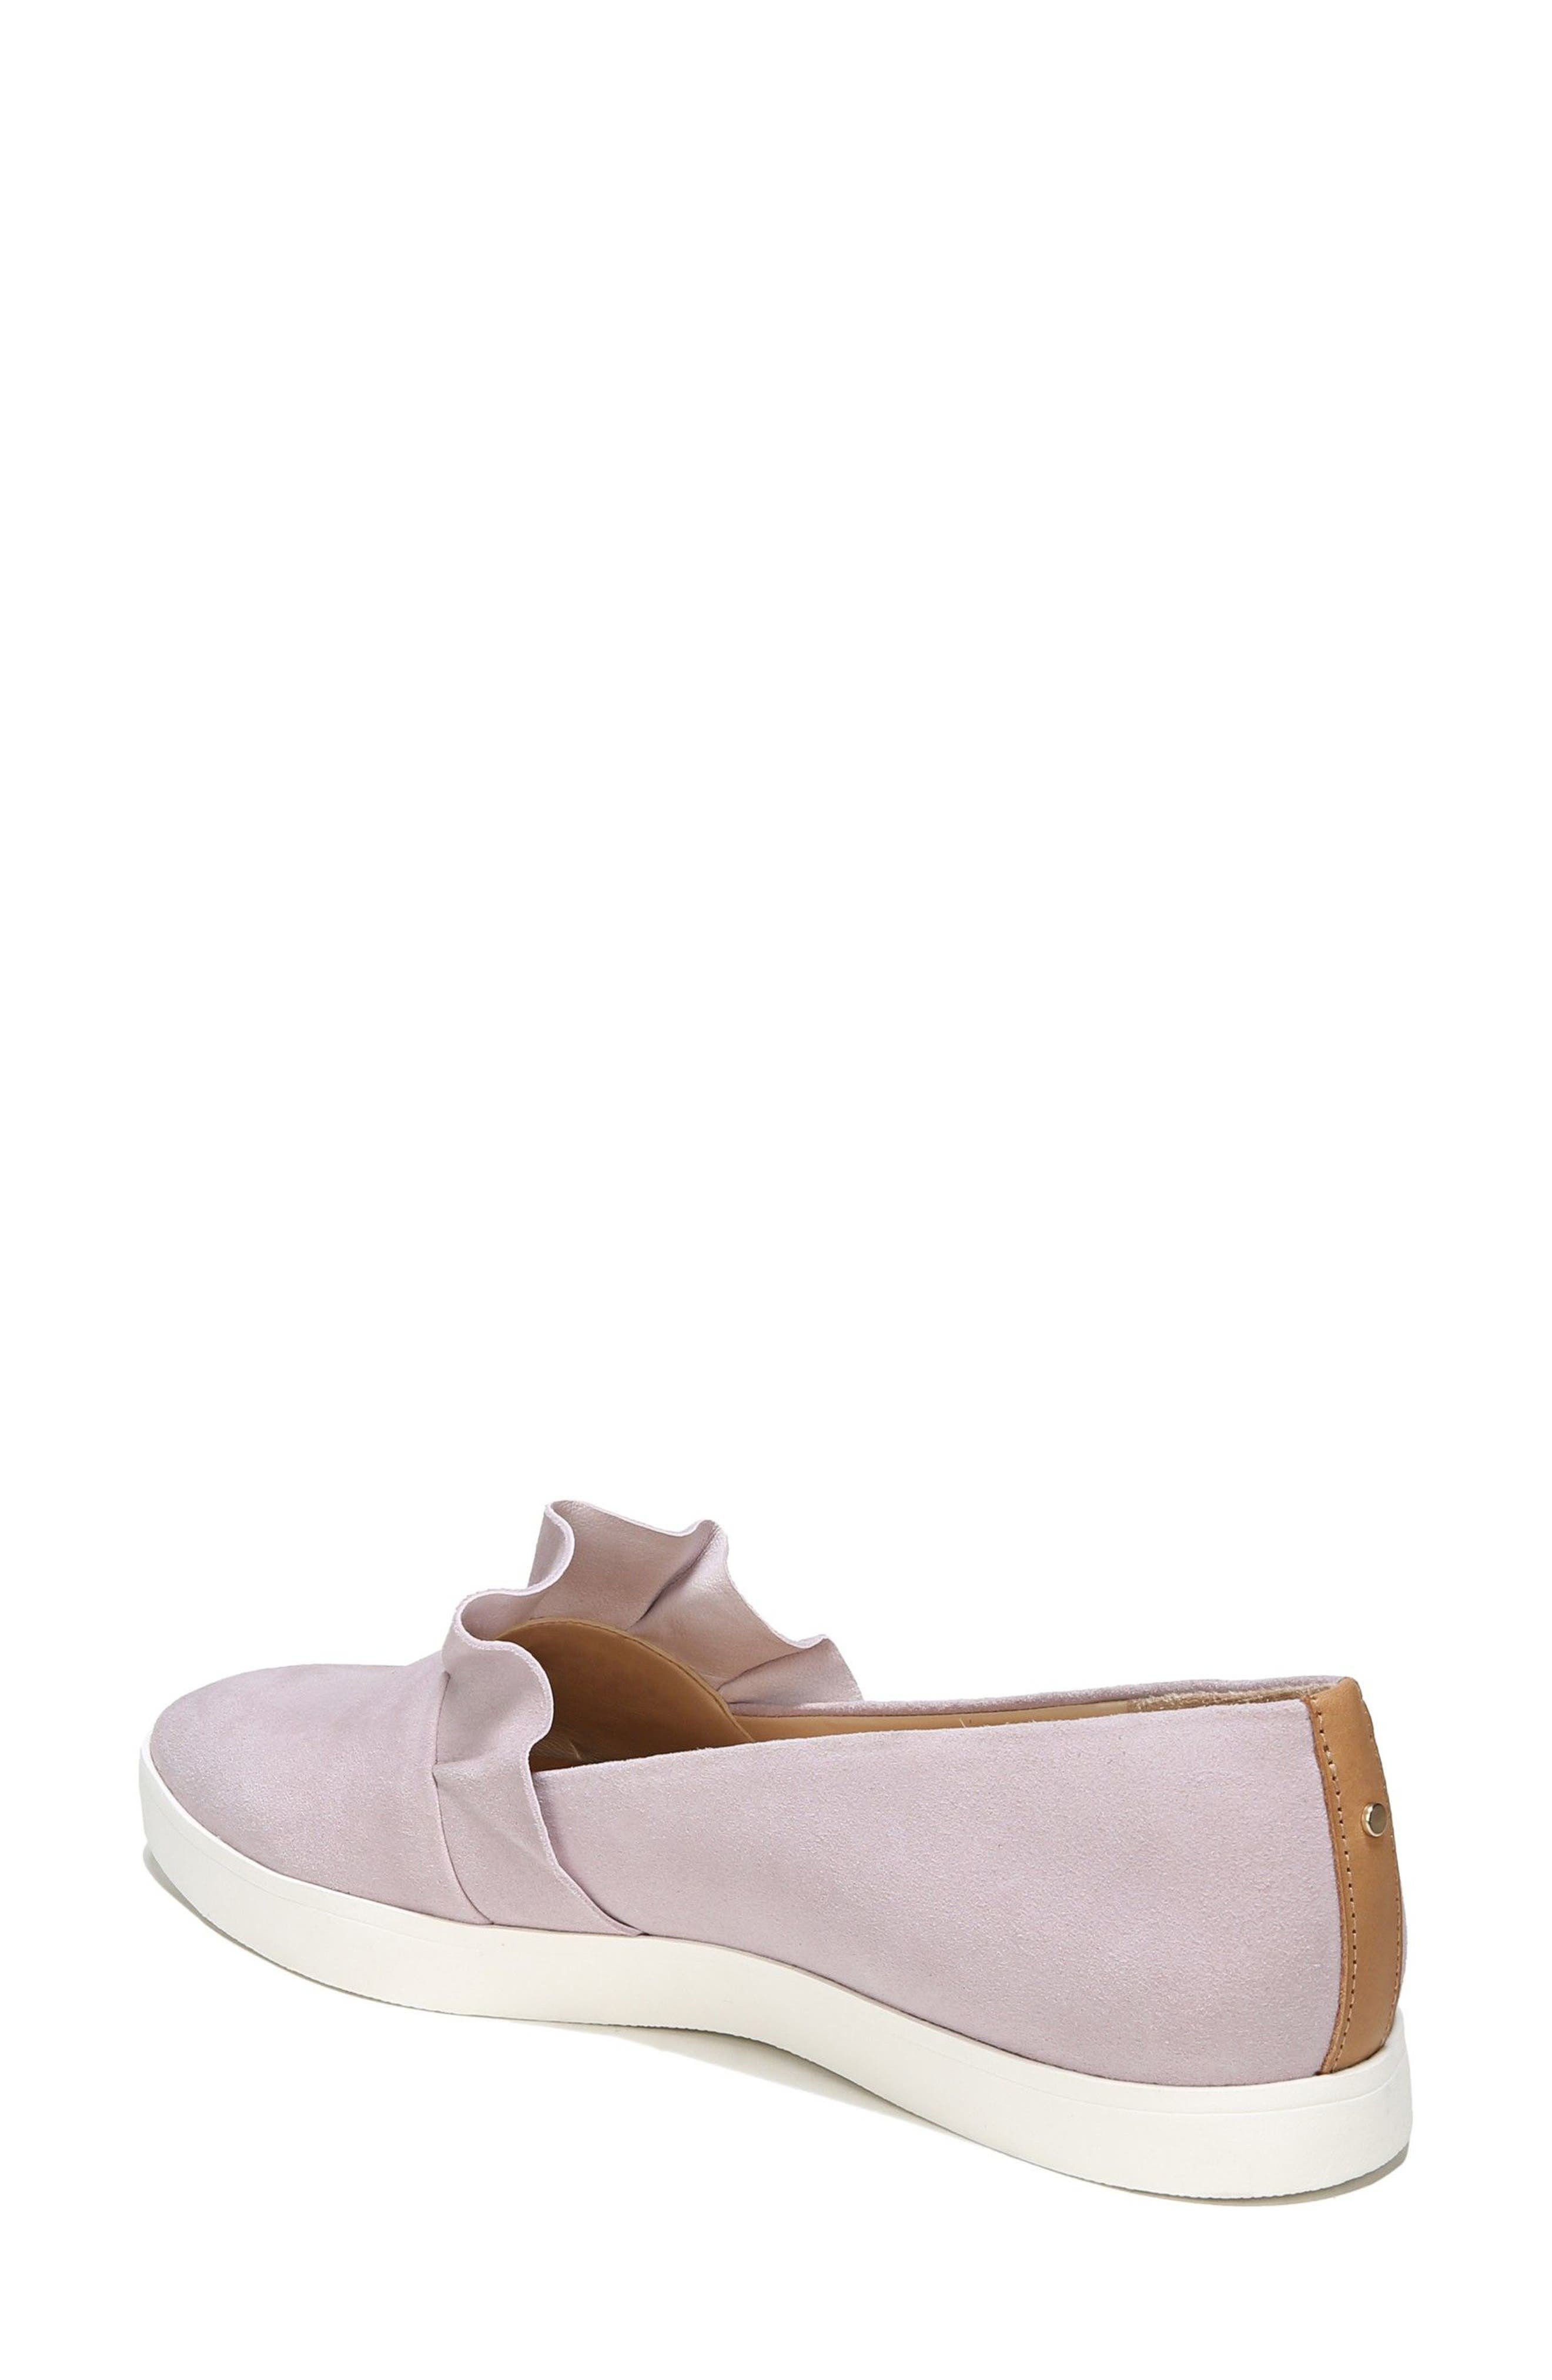 Vienna Slip-On Sneaker,                             Alternate thumbnail 6, color,